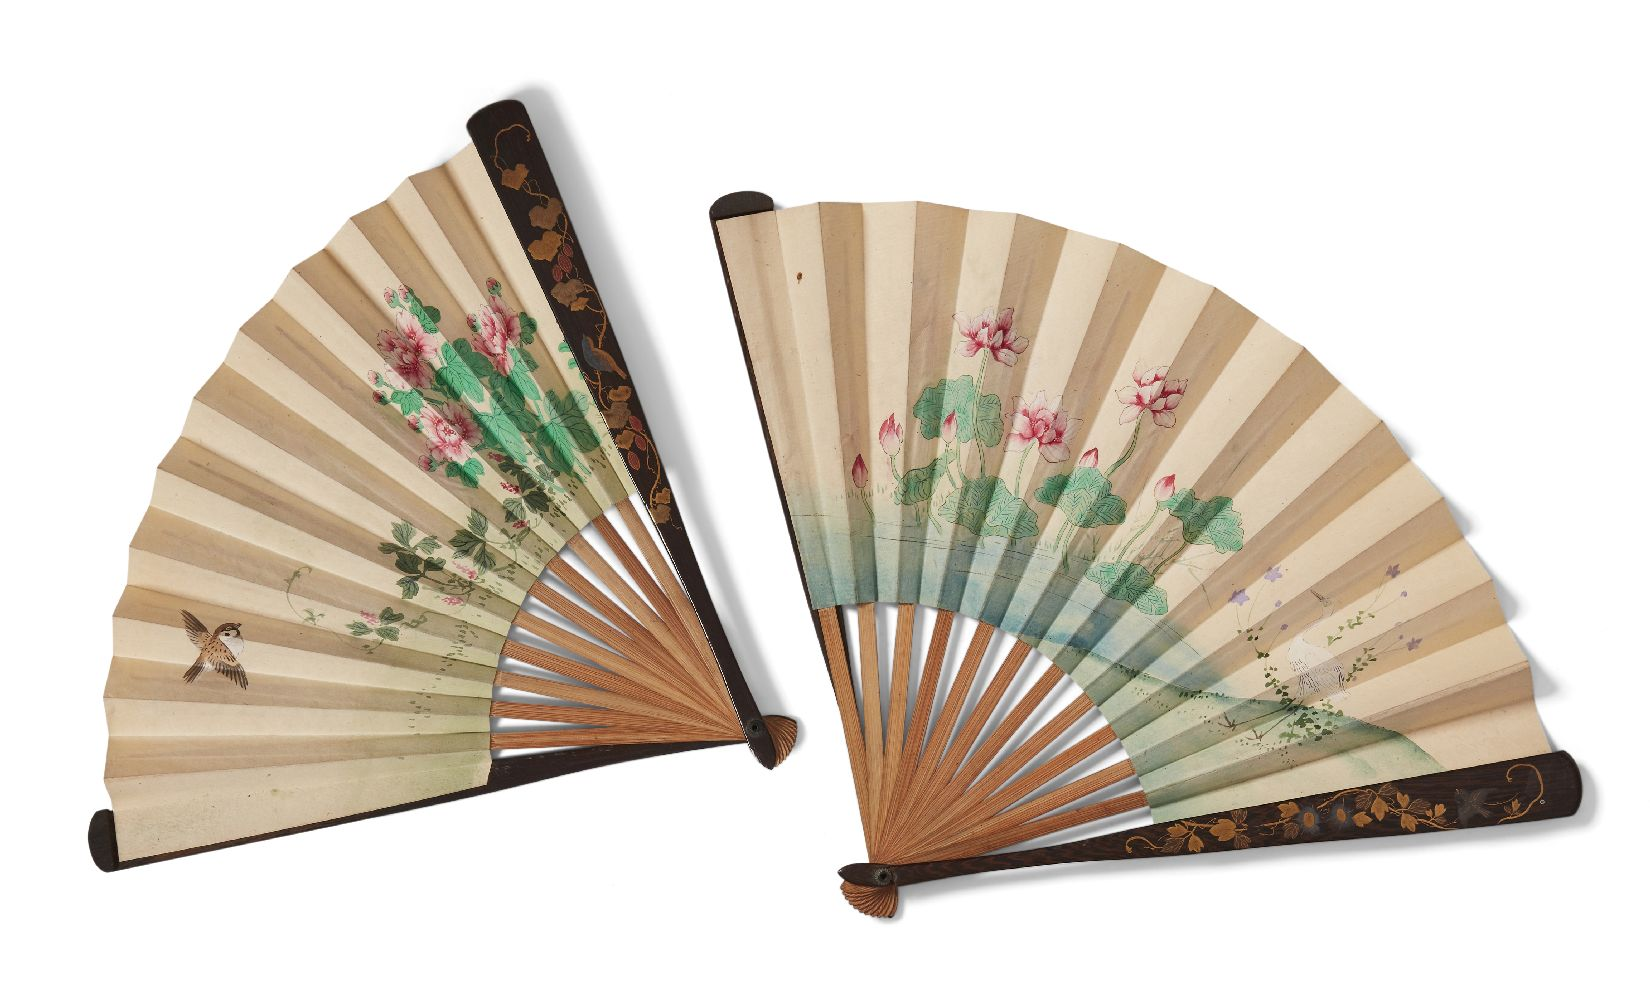 Two Japanese painted paper fans, Meiji period, each with lacquer guard sticks decorated with